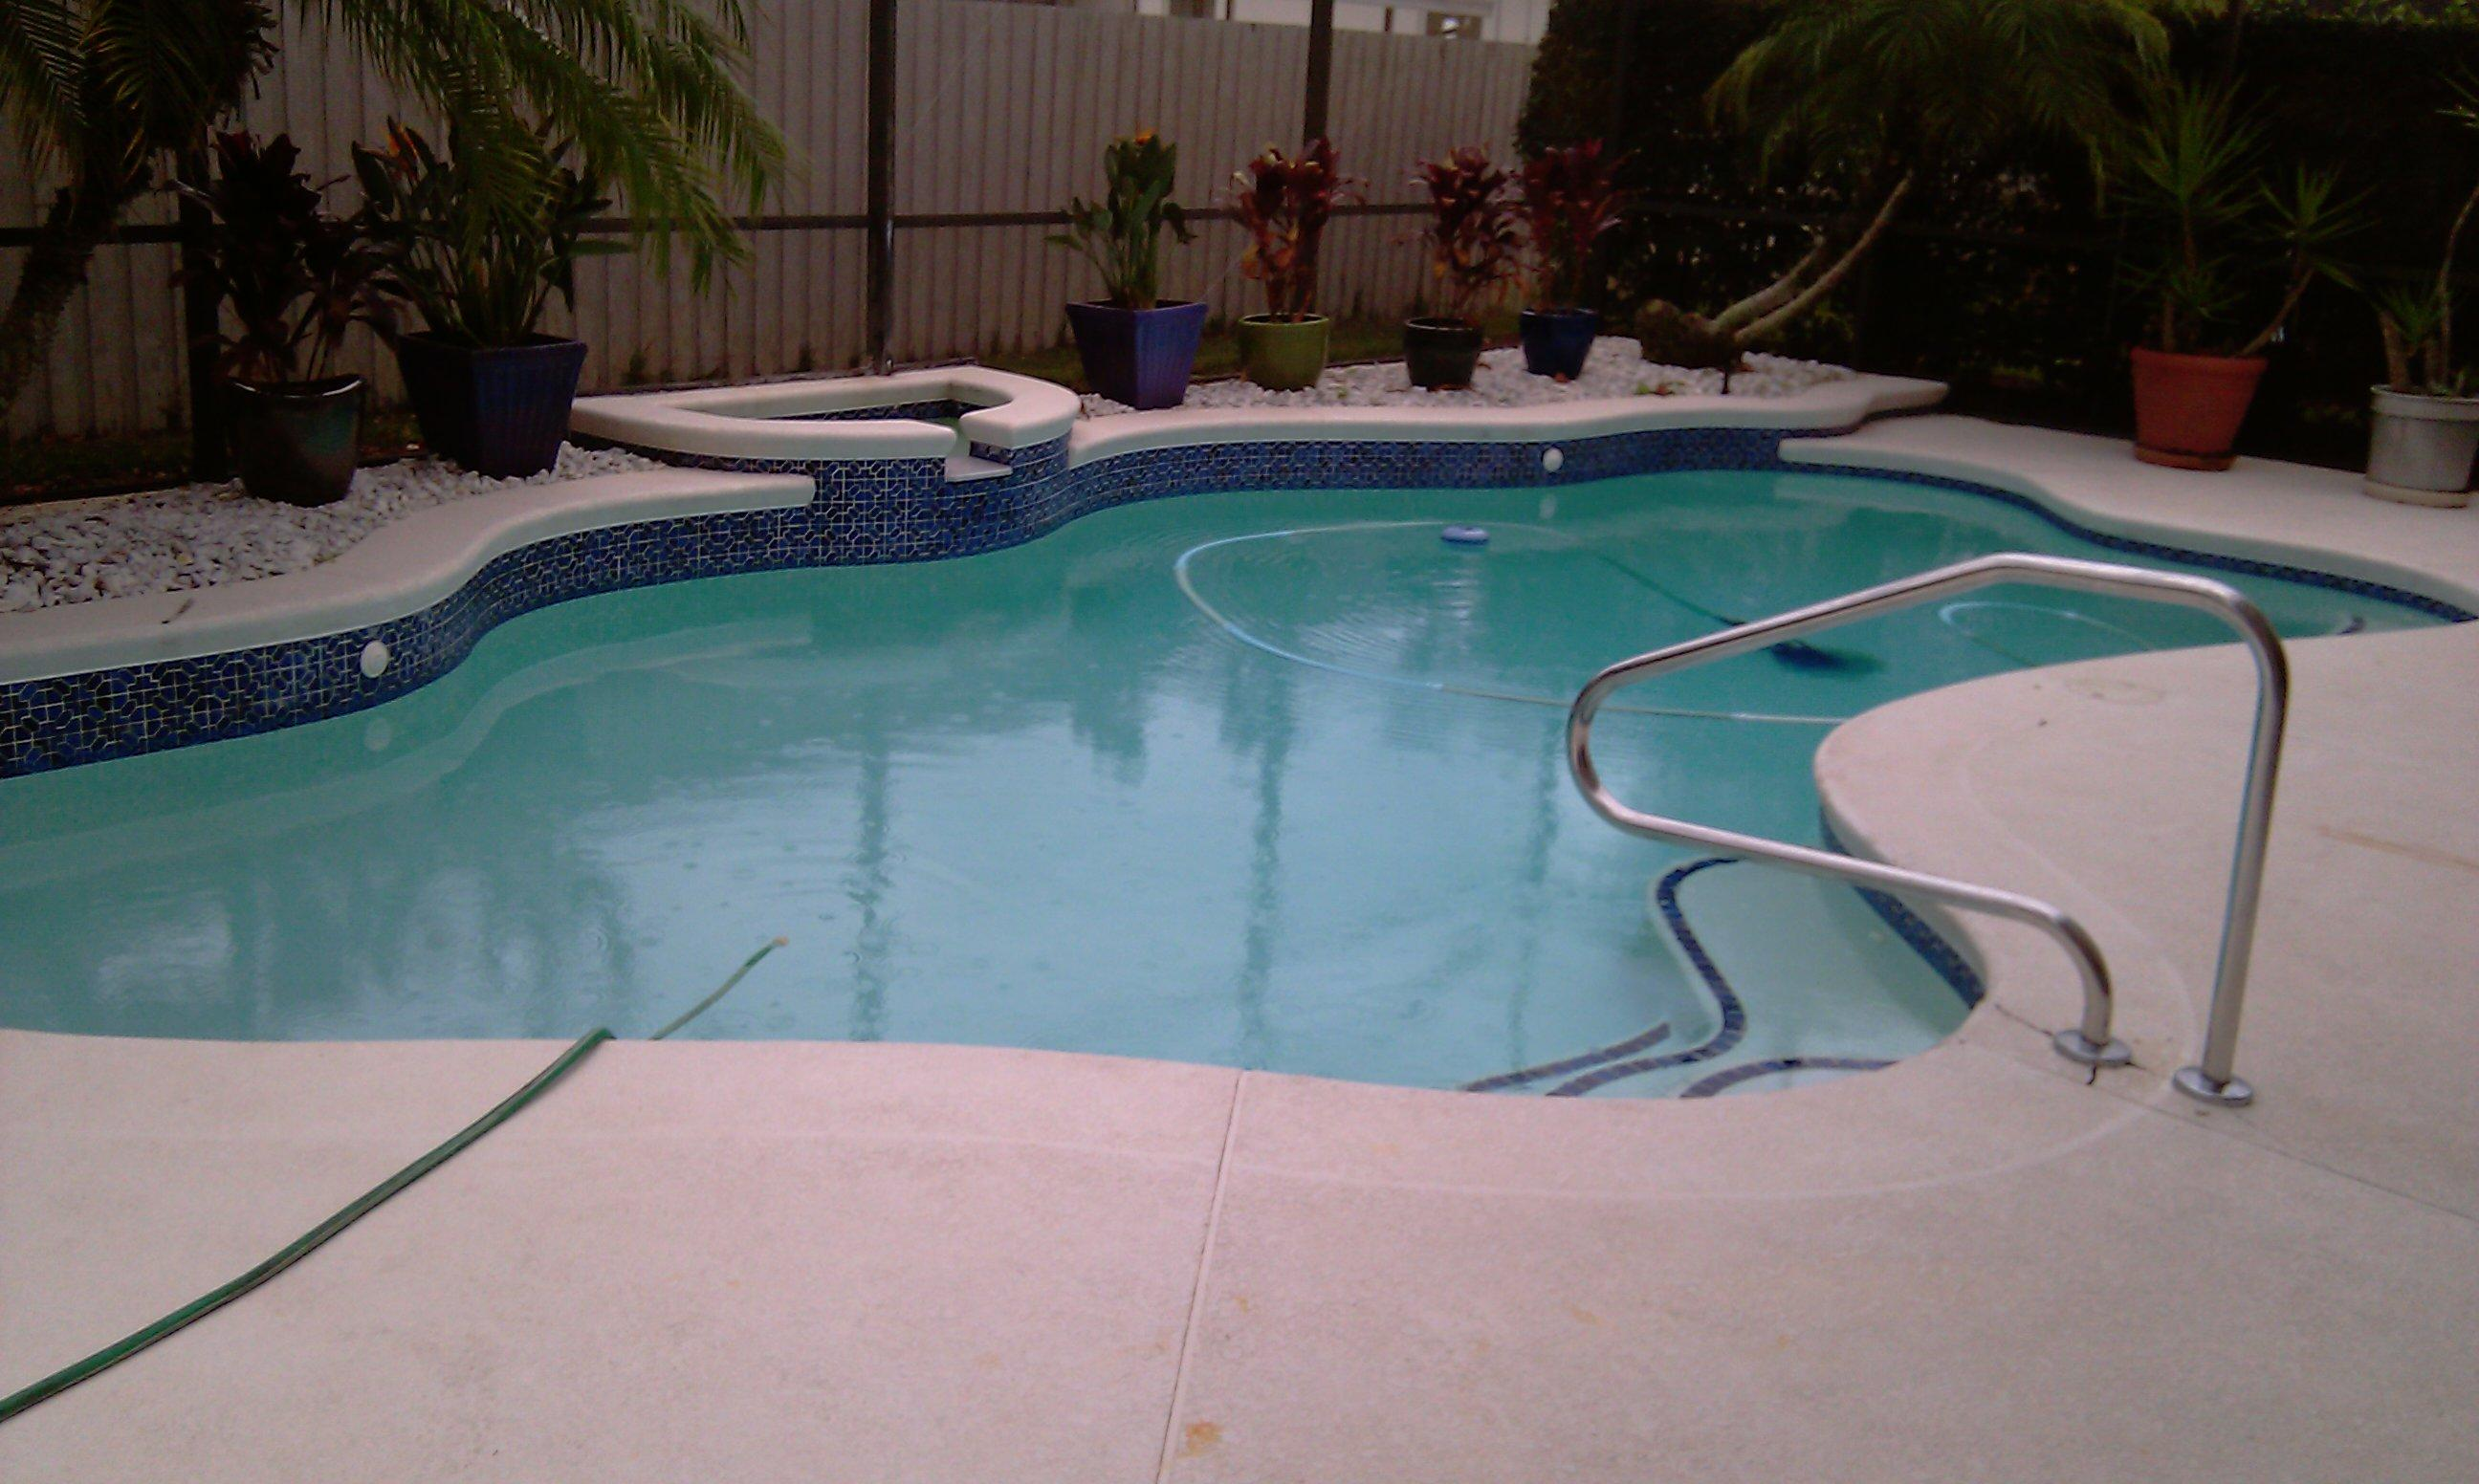 Ibiza pool llc in davenport fl swimming pool for Swimming pool dealers